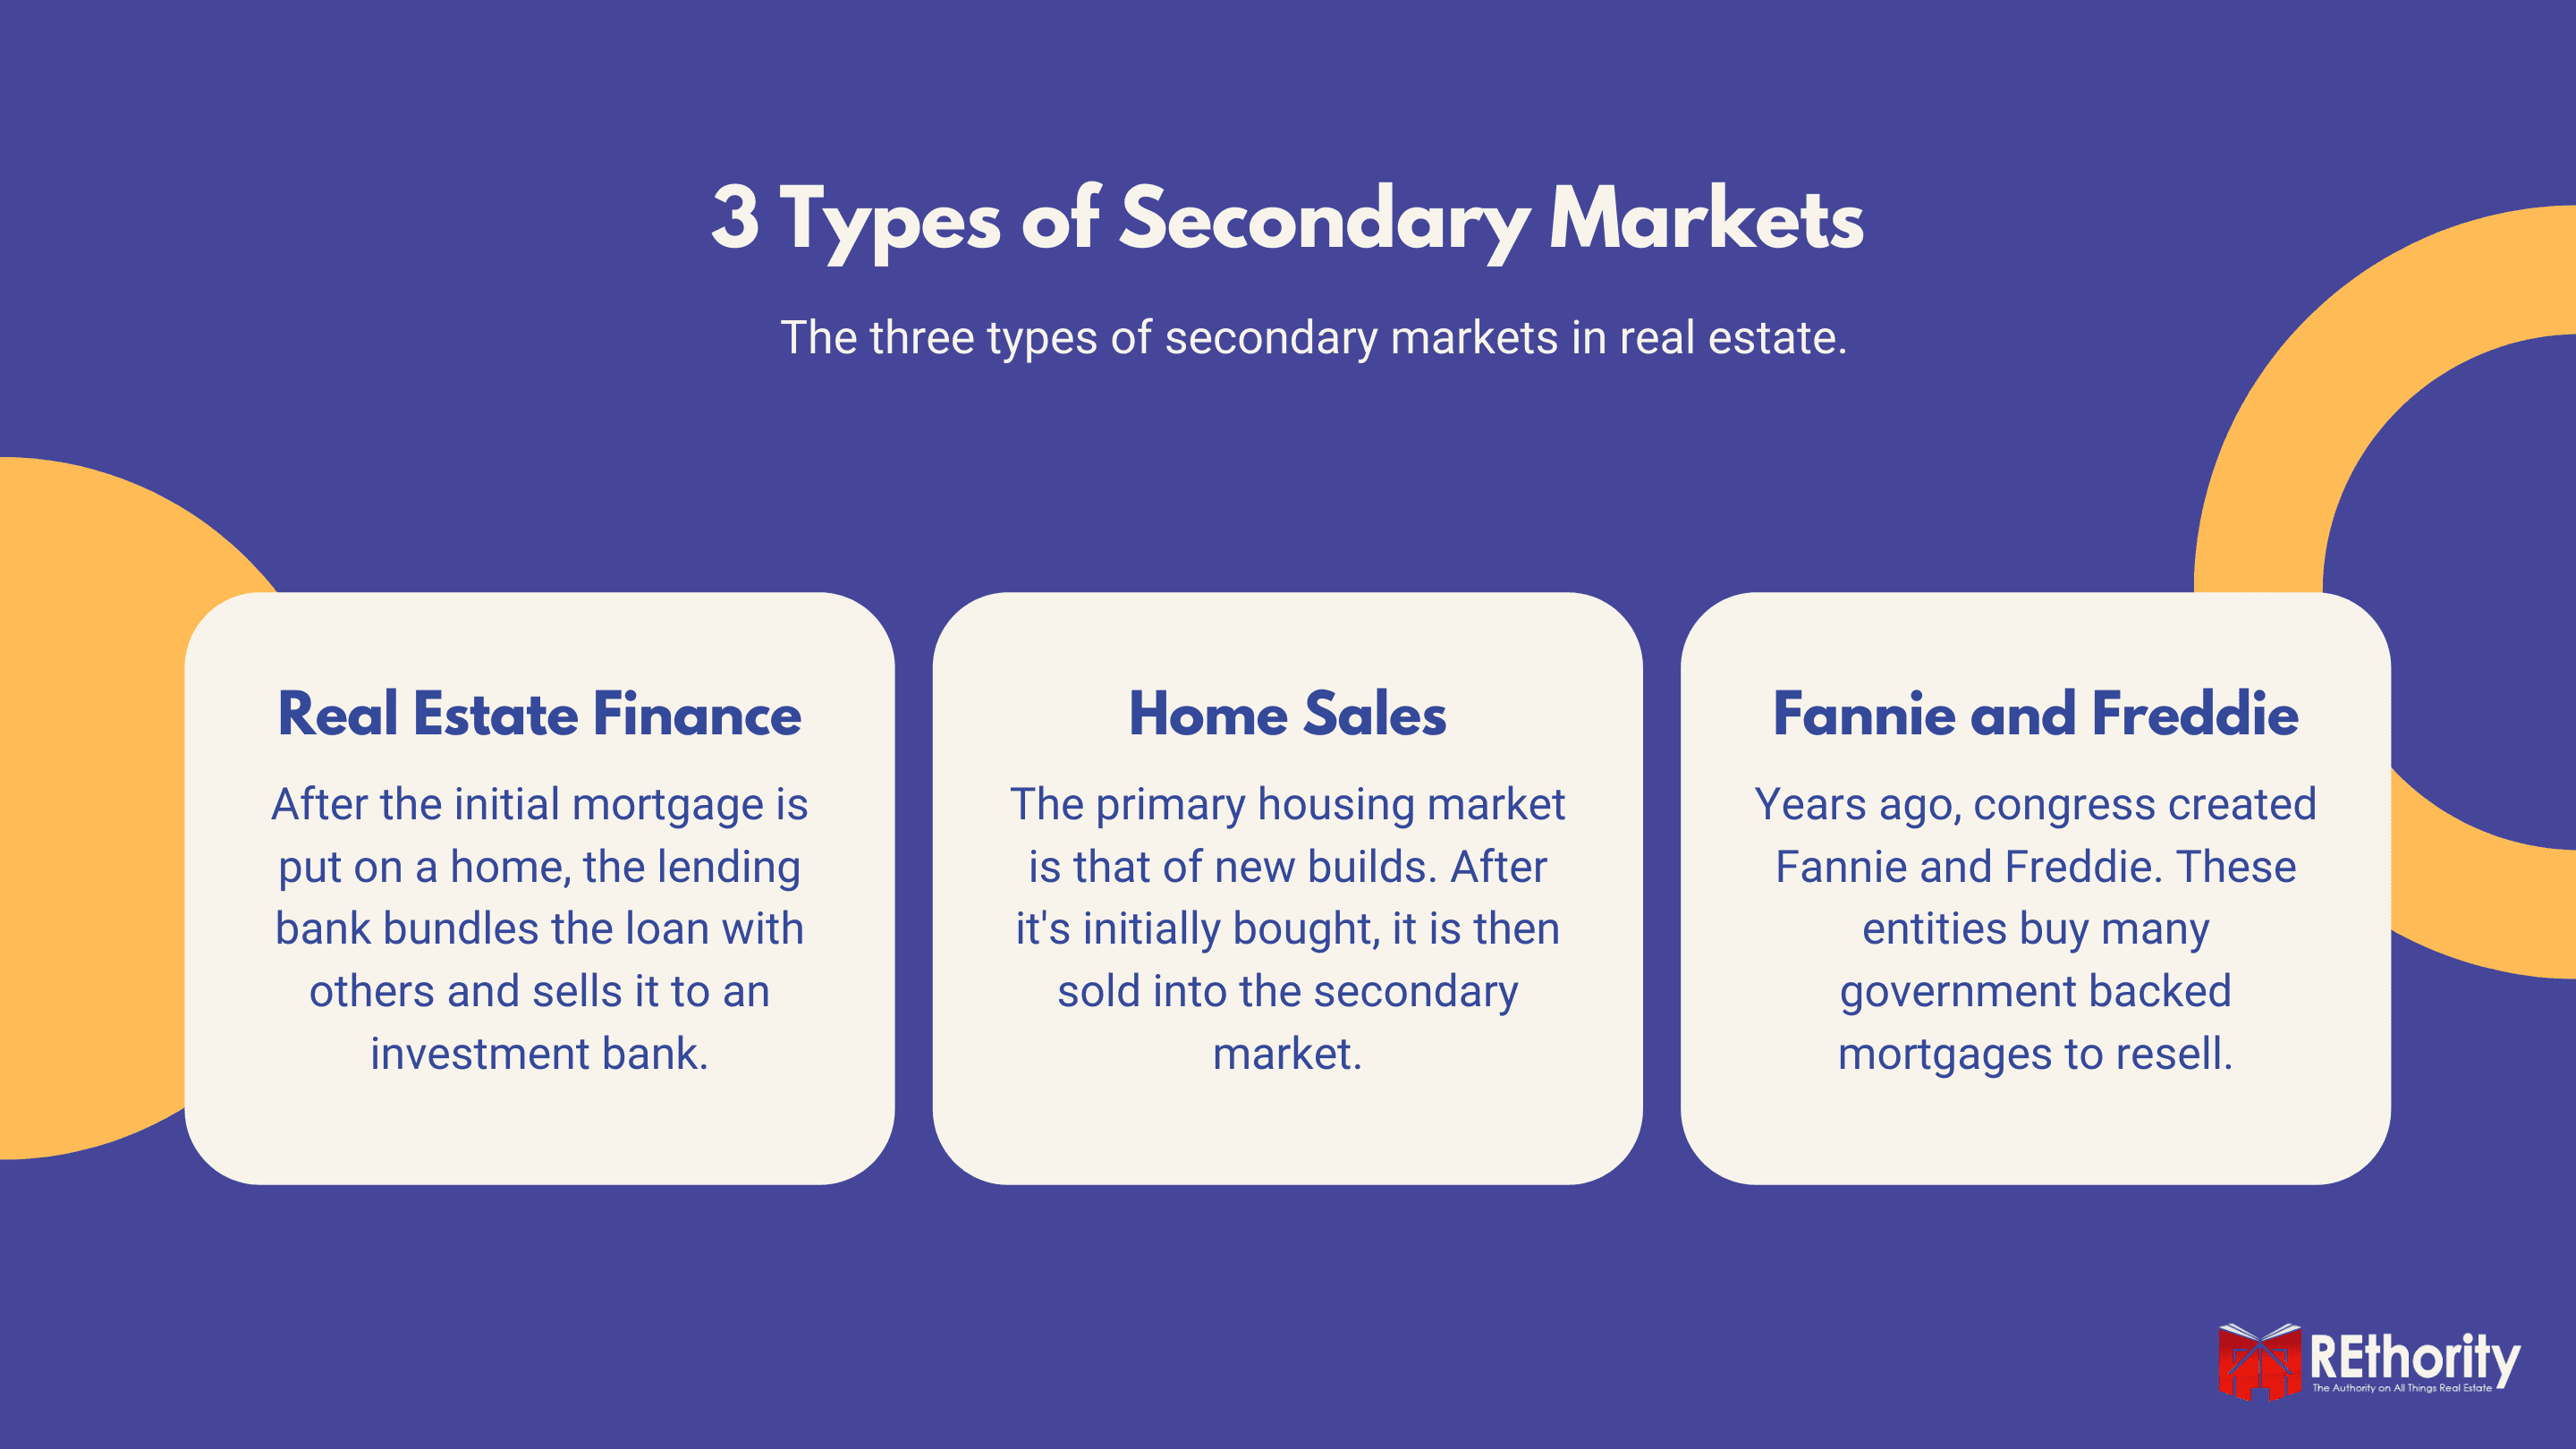 Three types of secondary markets including real estate finance, Fannie and Freddie, and Home Sales.